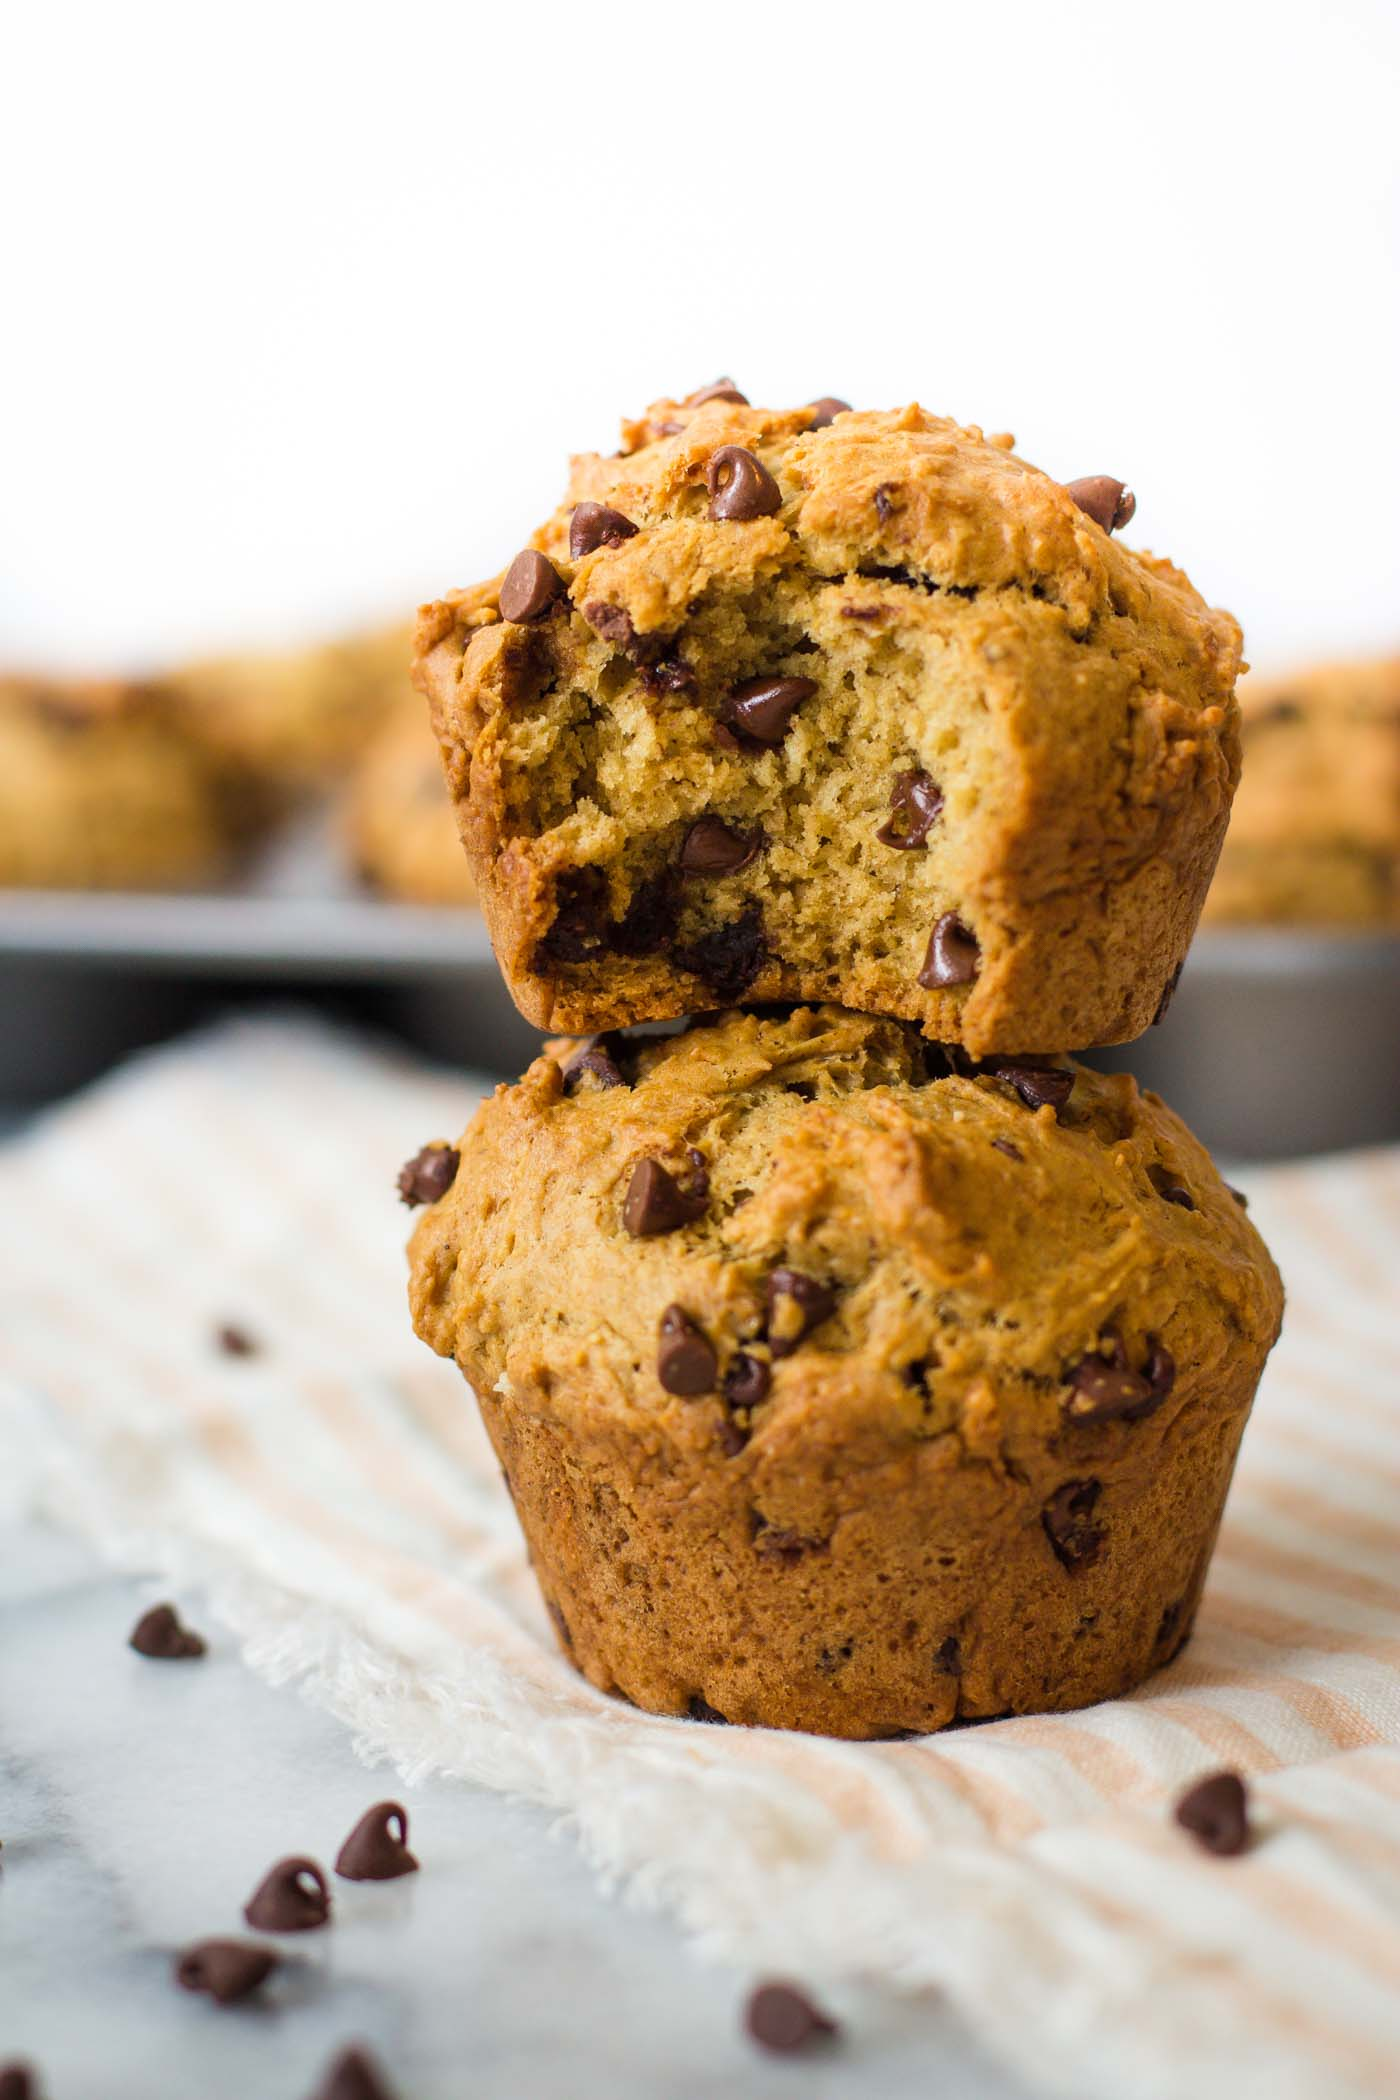 Muffins Kinder Country Chocolate Chip Vegan Muffins Food With Feeling